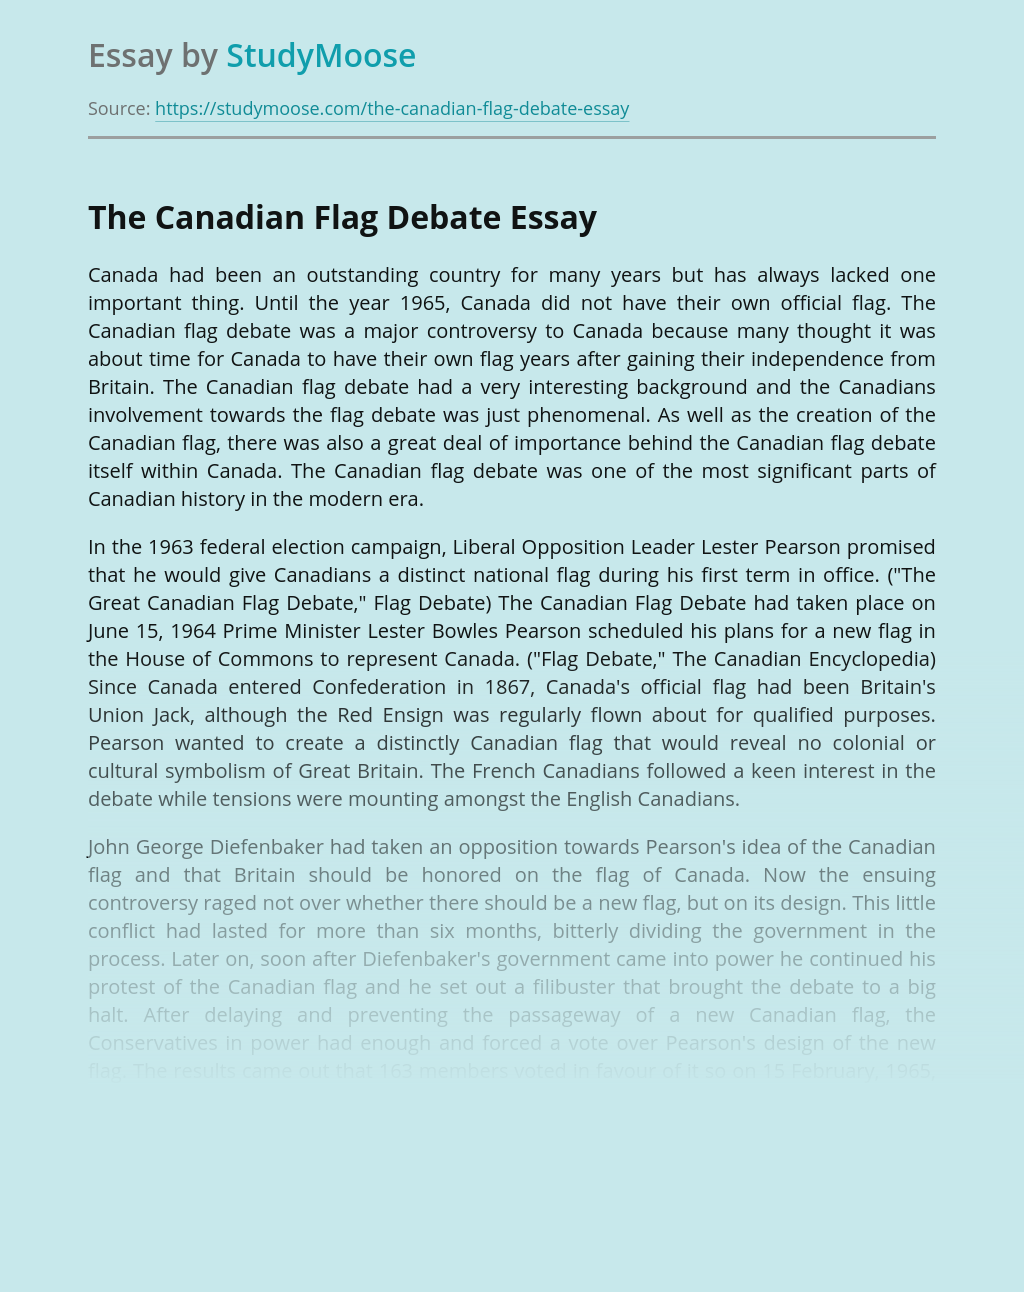 The Canadian Flag Debate